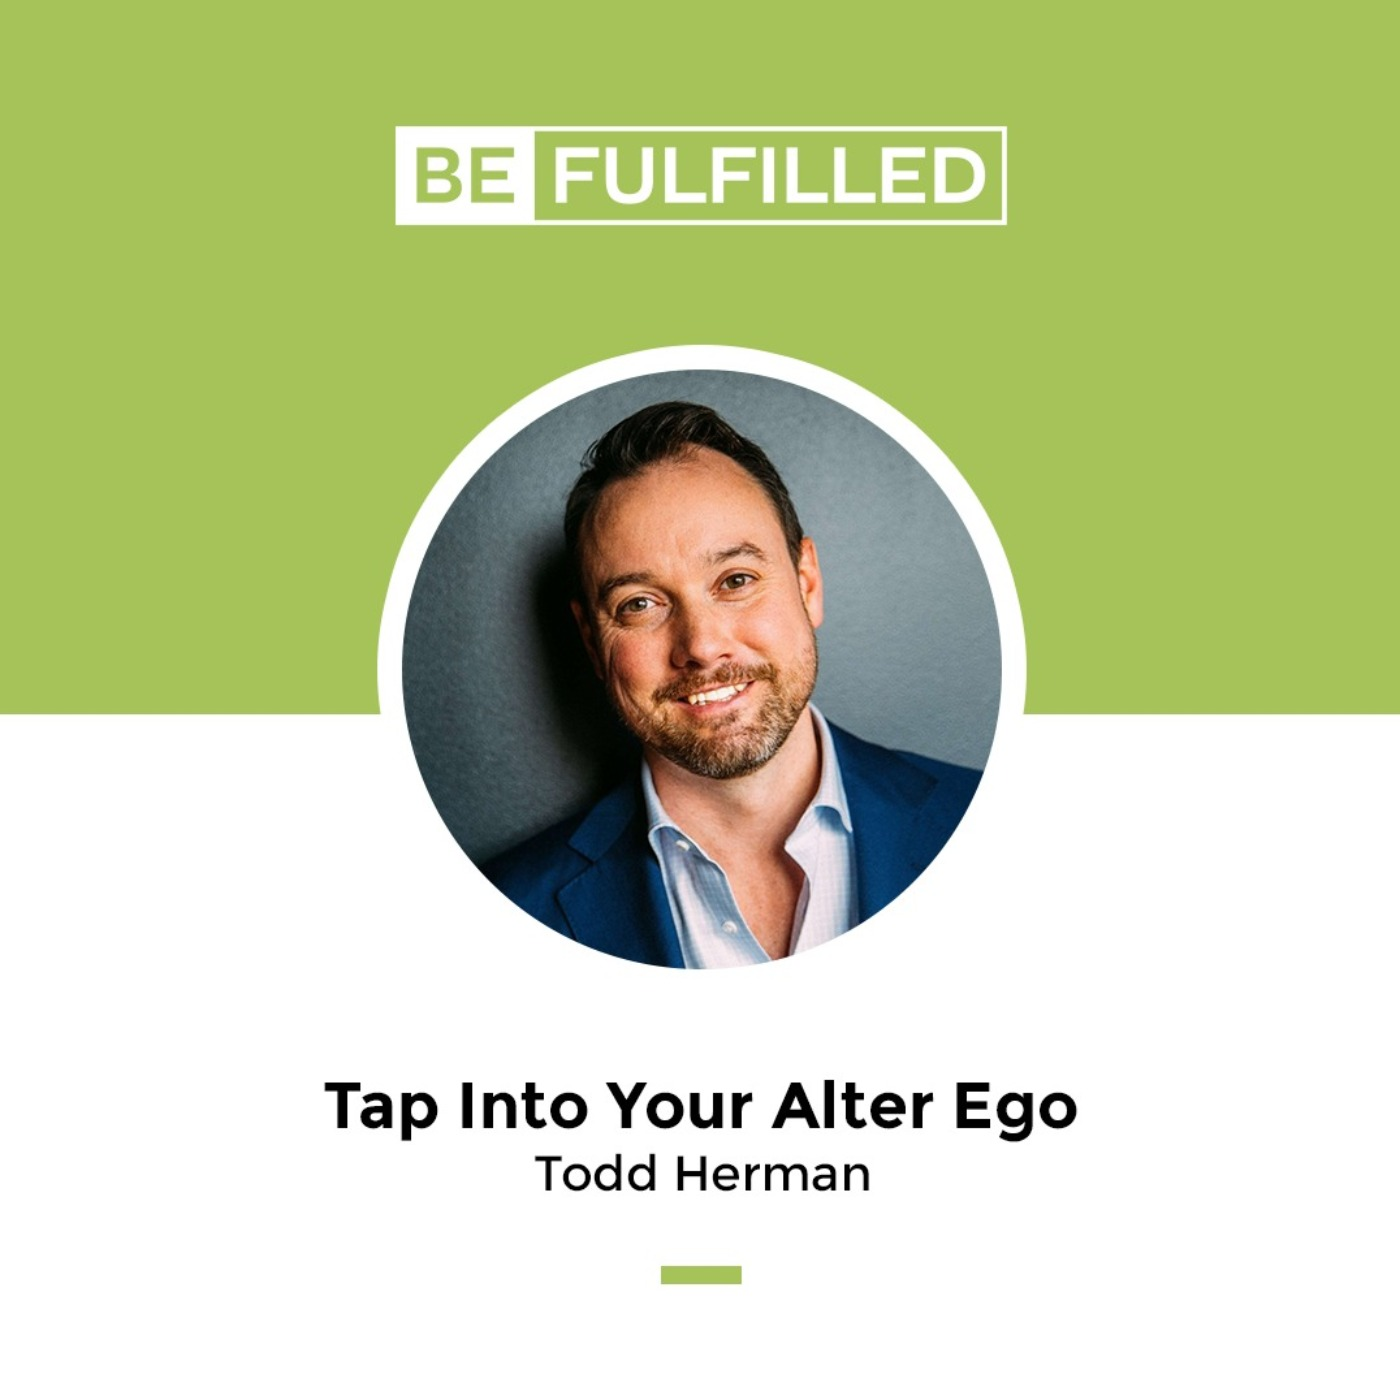 Tap Into Your Alter Ego - Todd Herman